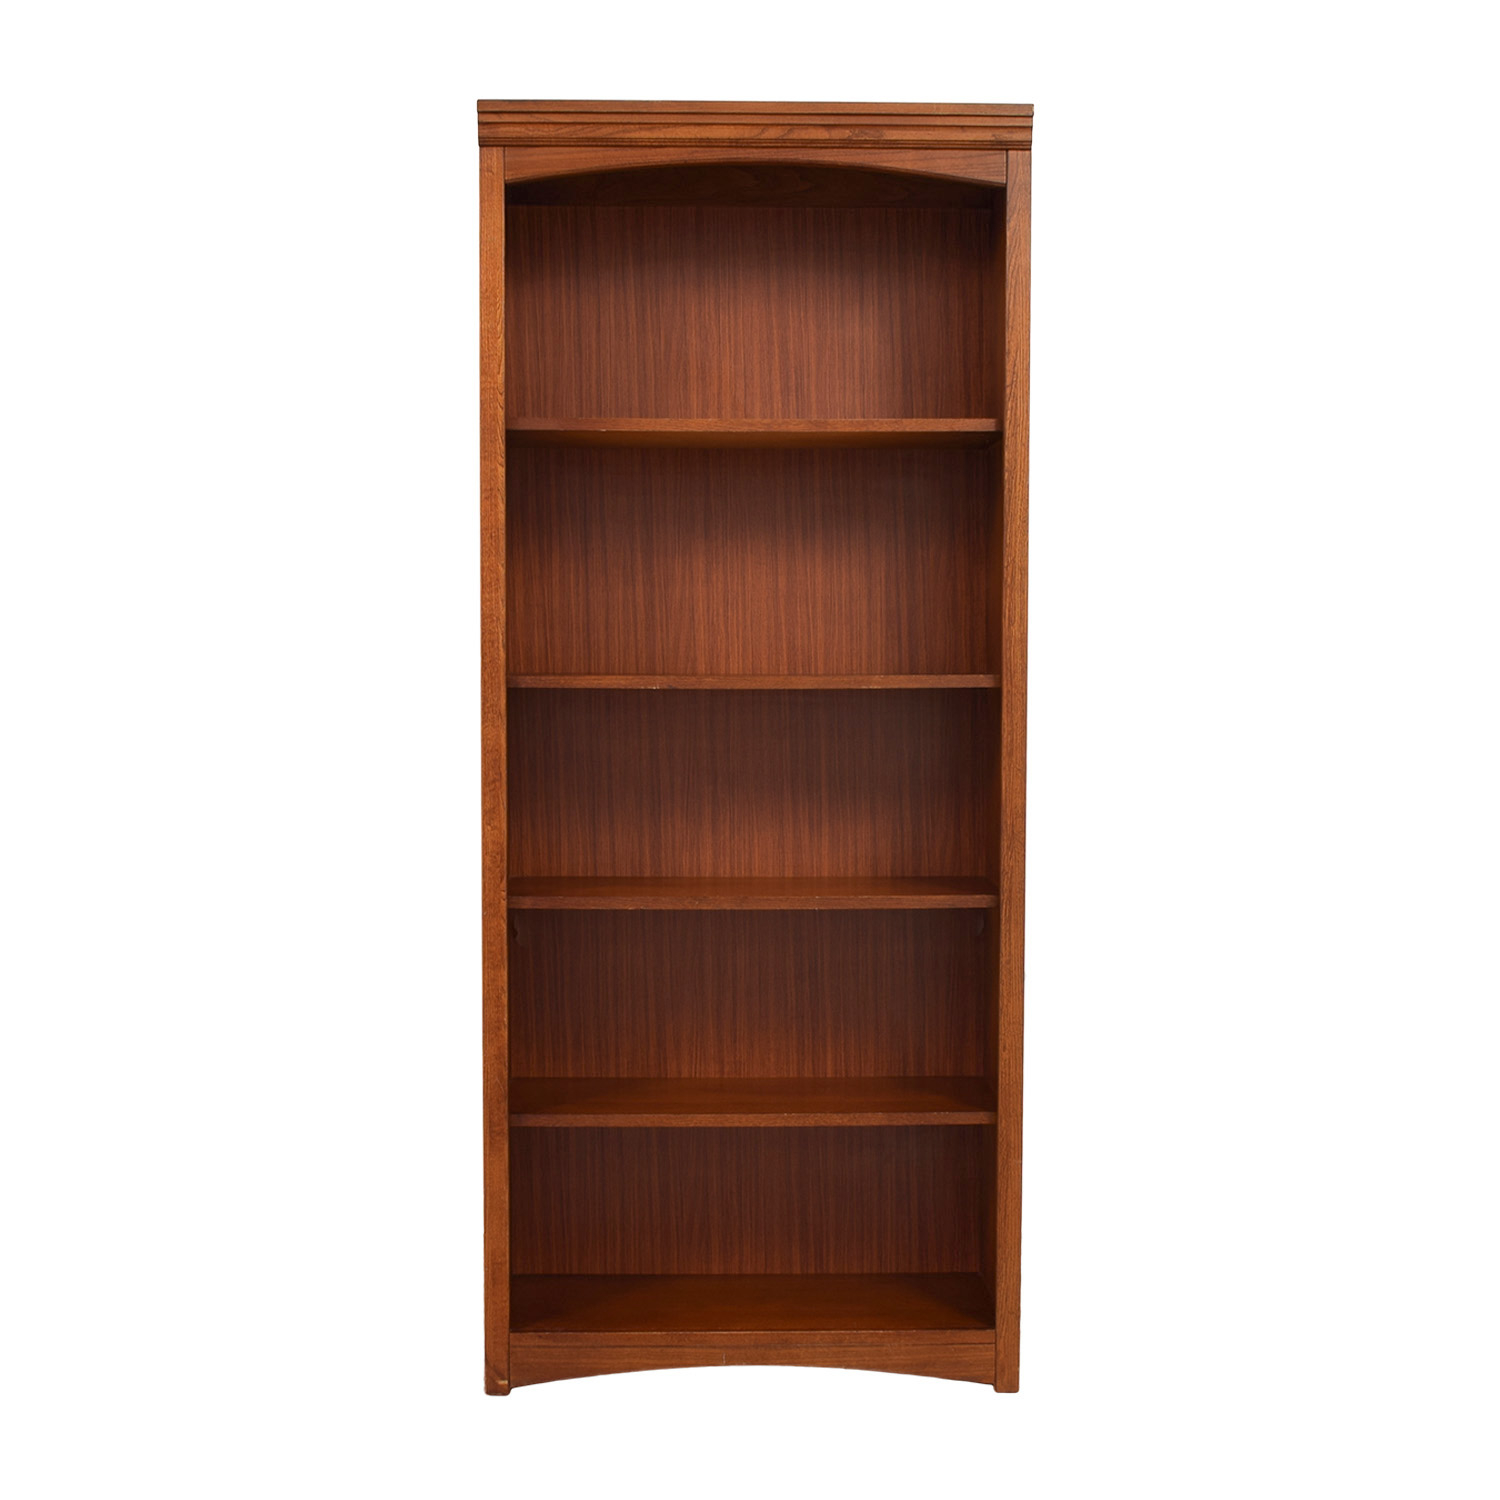 68 Off Bassett Furniture Bassett Wooden Bookshelf Storage for dimensions 1500 X 1500